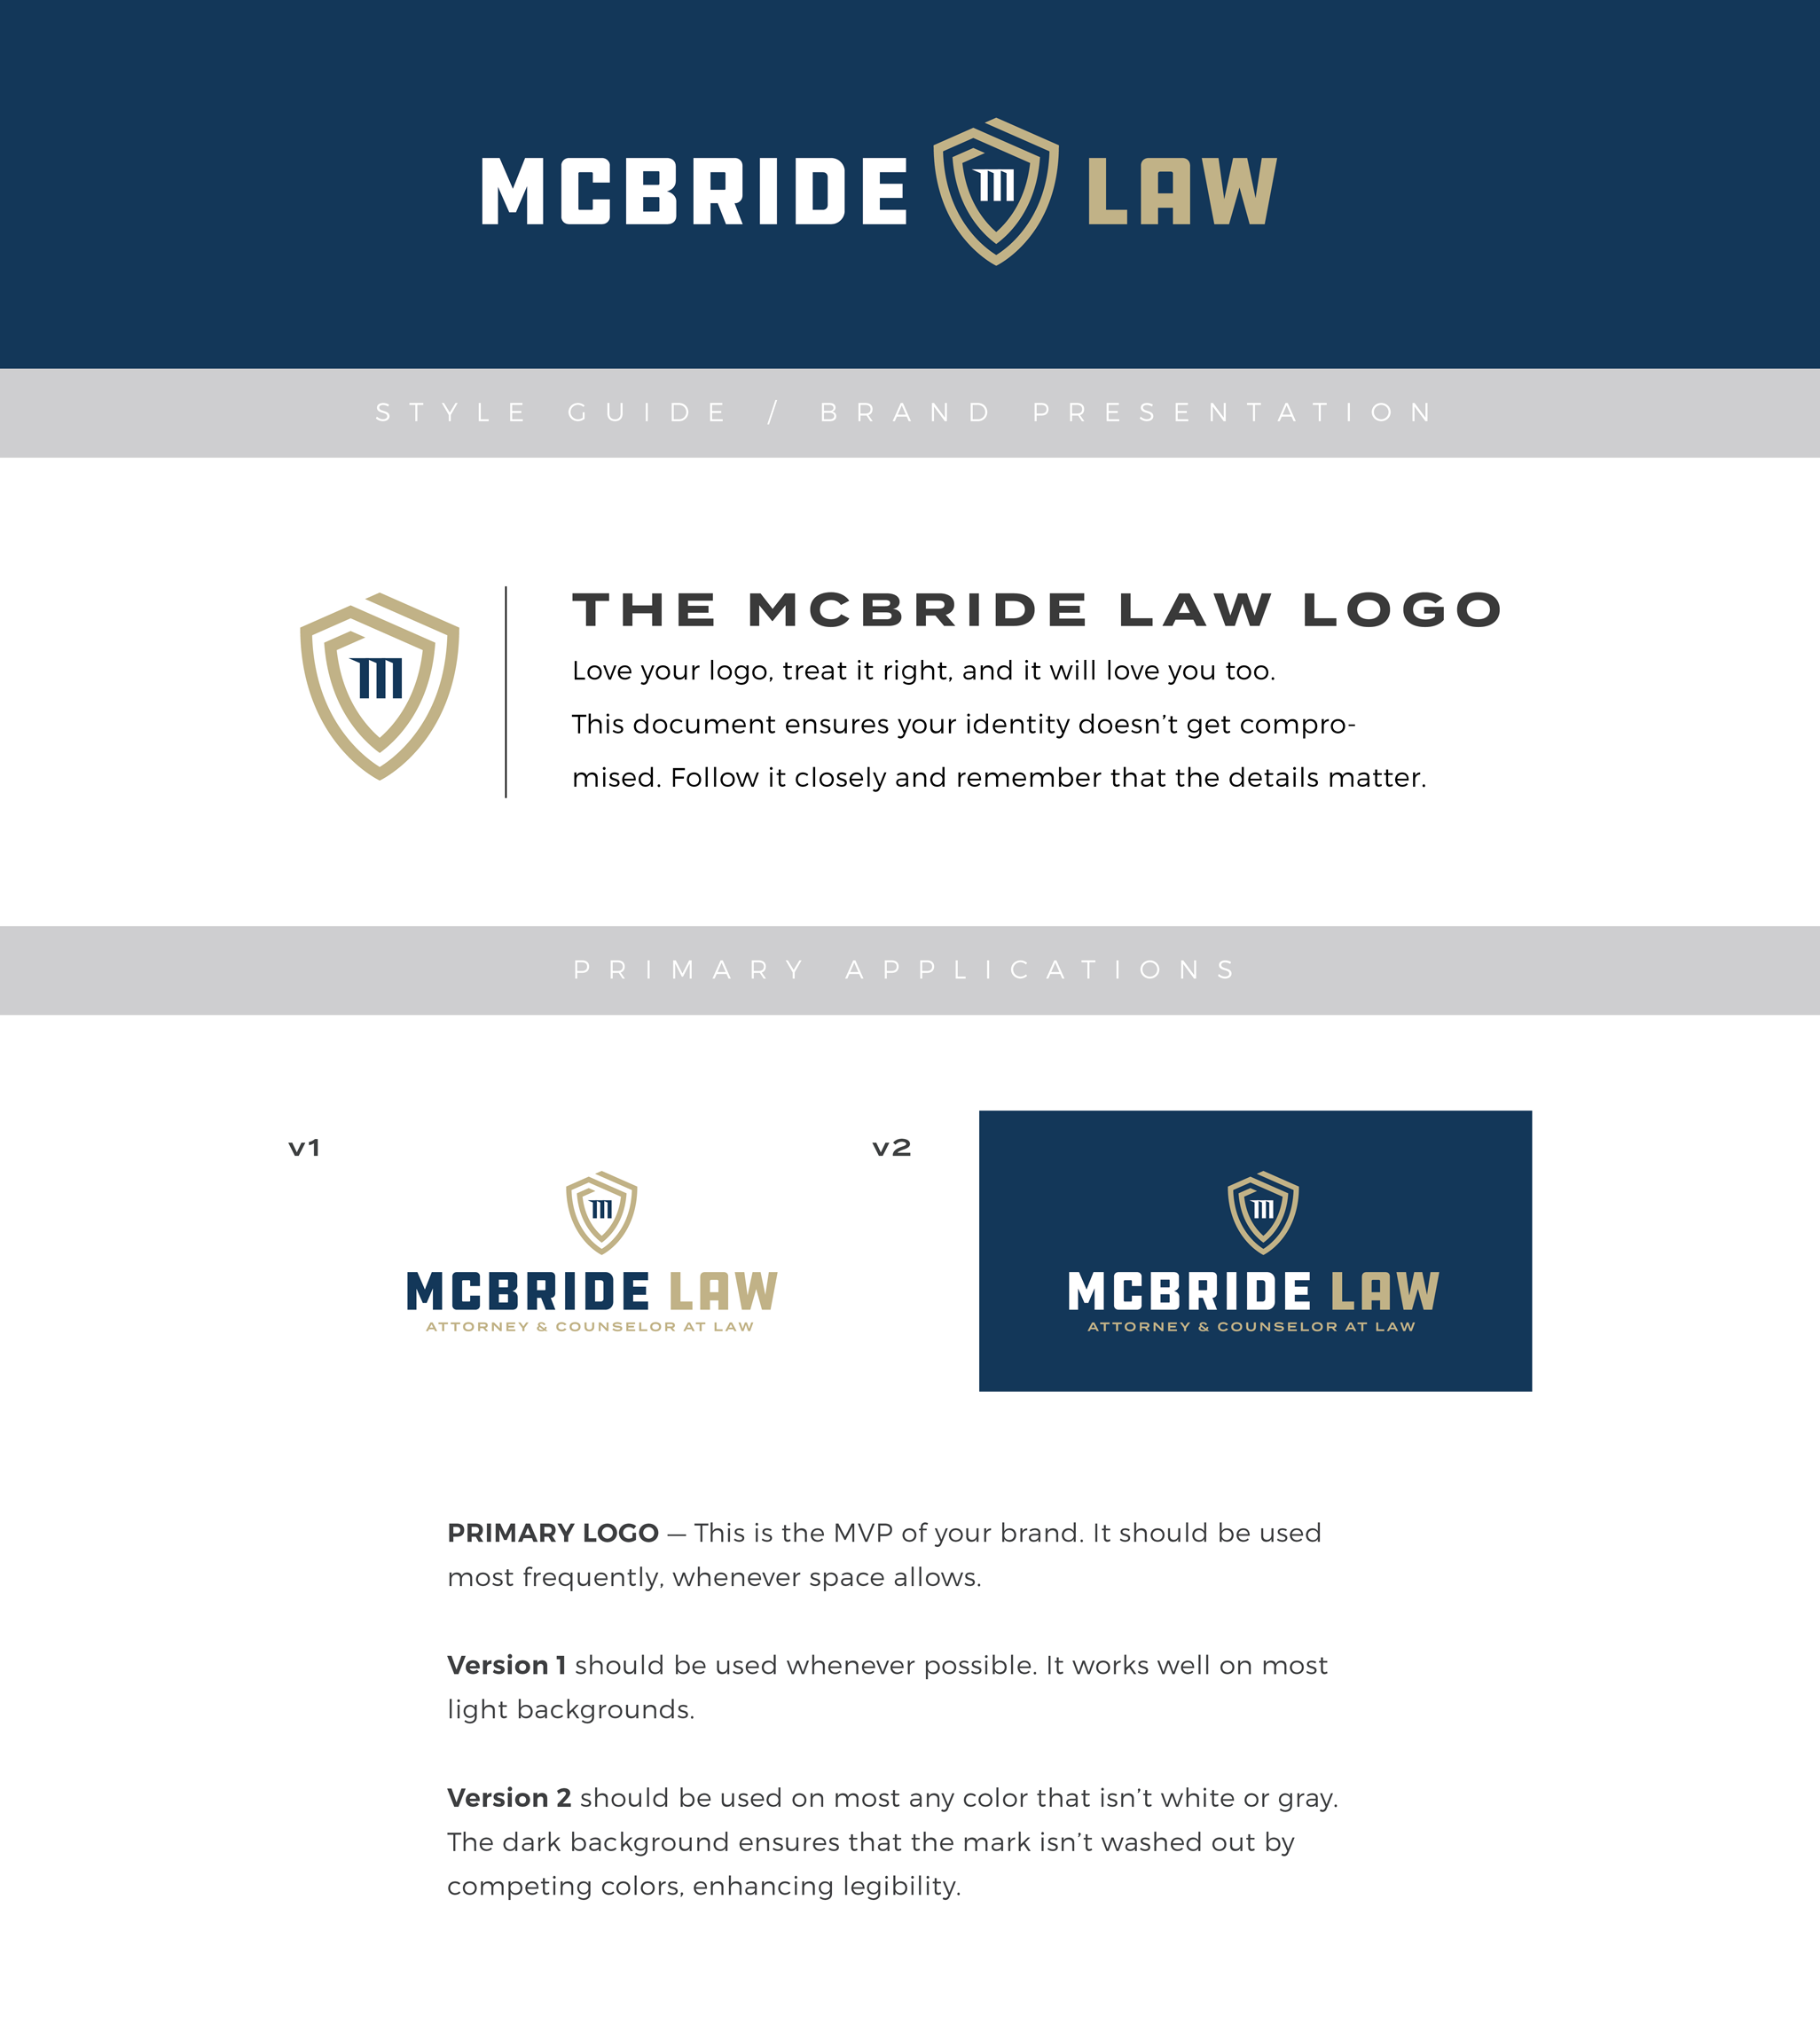 Ben-McBride-Style-Guide-5-10-18-v1_Style-Guide_01.png